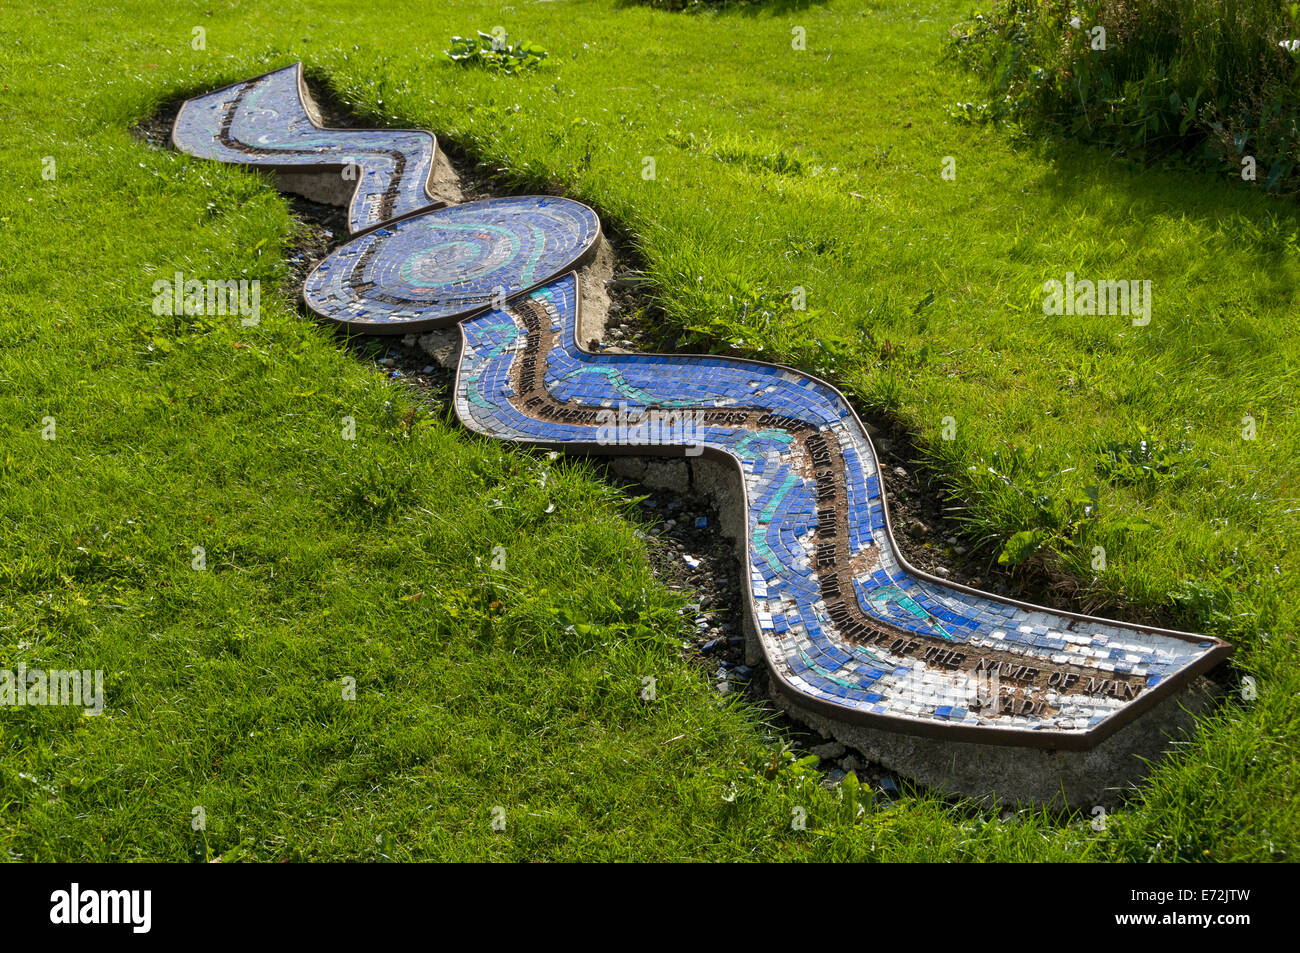 The 'River of Life' sculpture, Unity Gardens, Castlecroft Road, Bury, Greater Manchester, England, UK - Stock Image